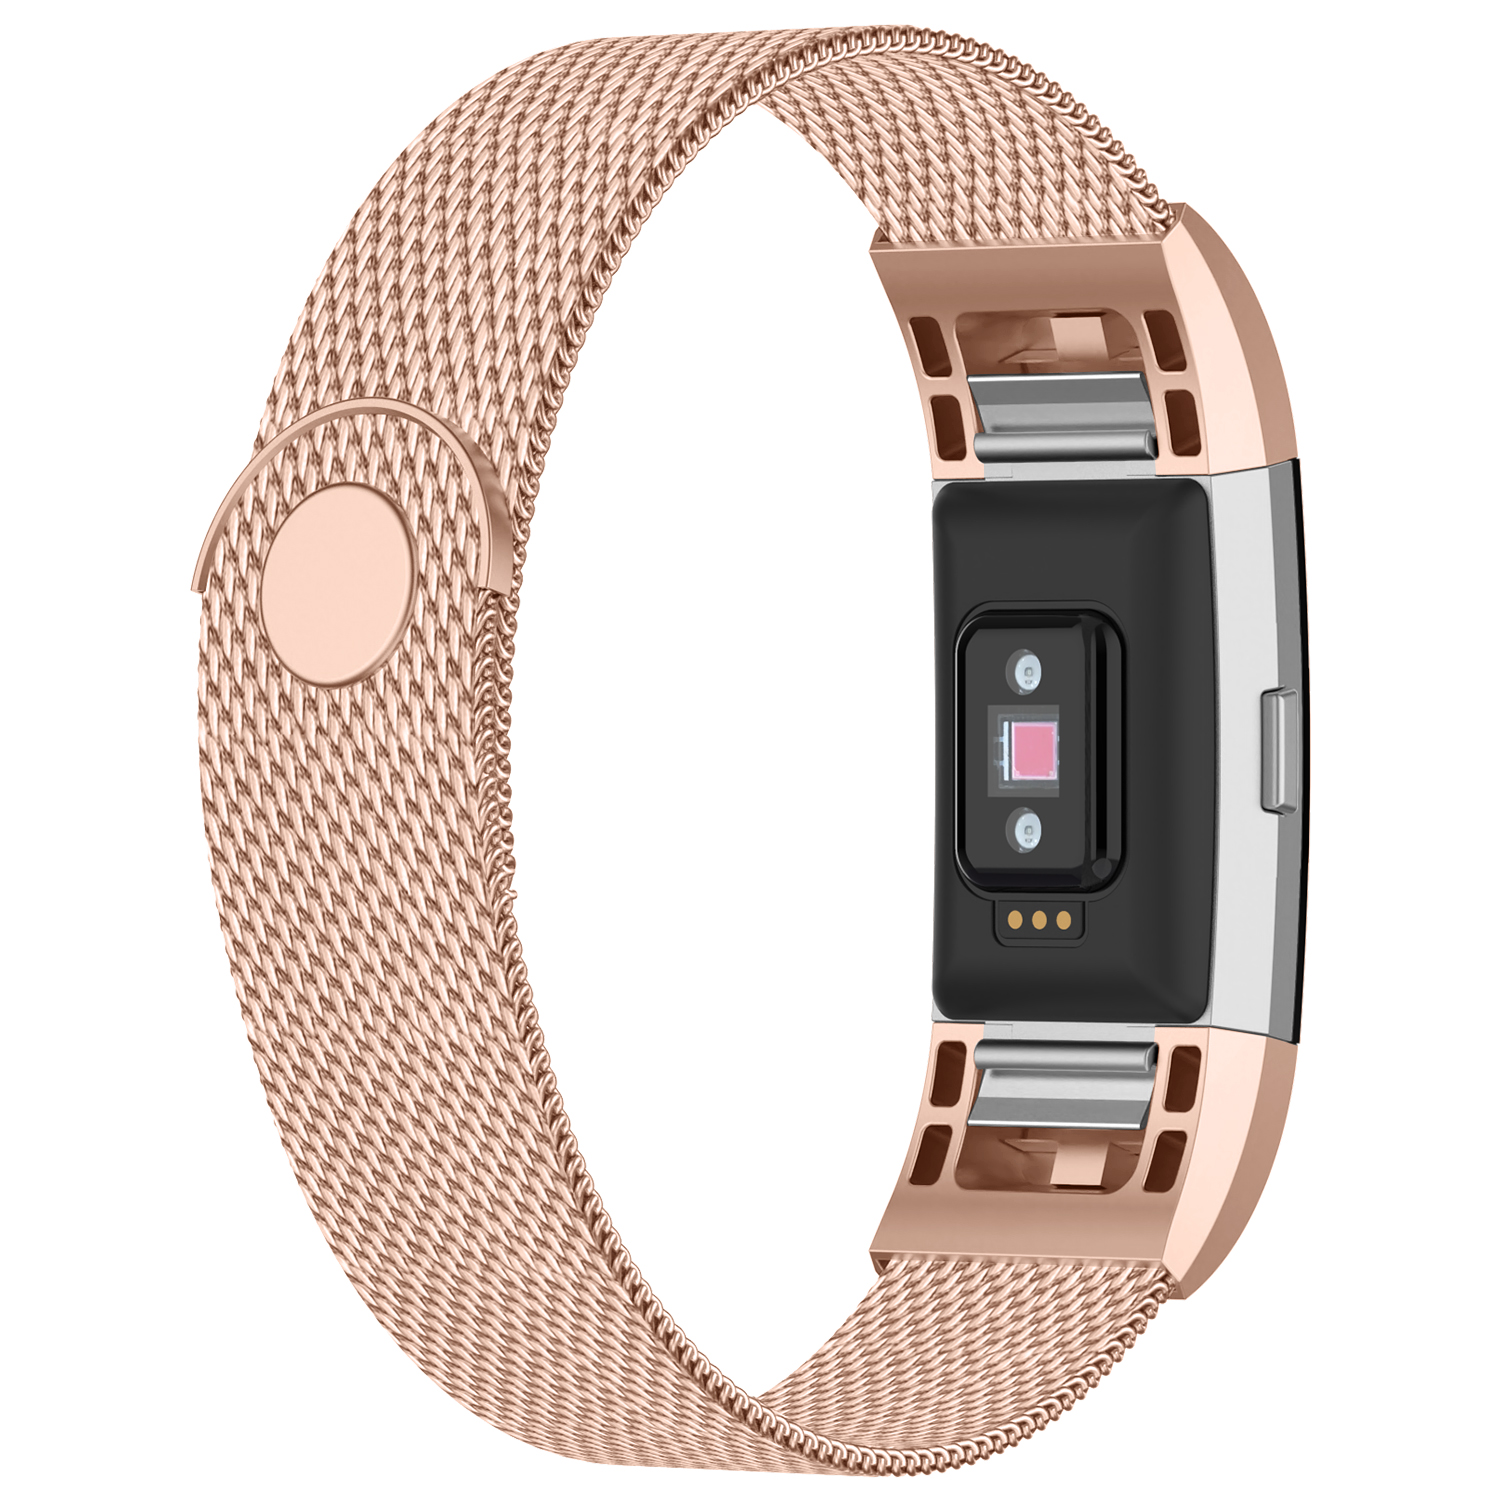 iGK Replacement Bands Compatible for Fitbit Charge 2, Stainless Steel Metal Bracelet with Unique Magnet Clasp Rose Gold Small